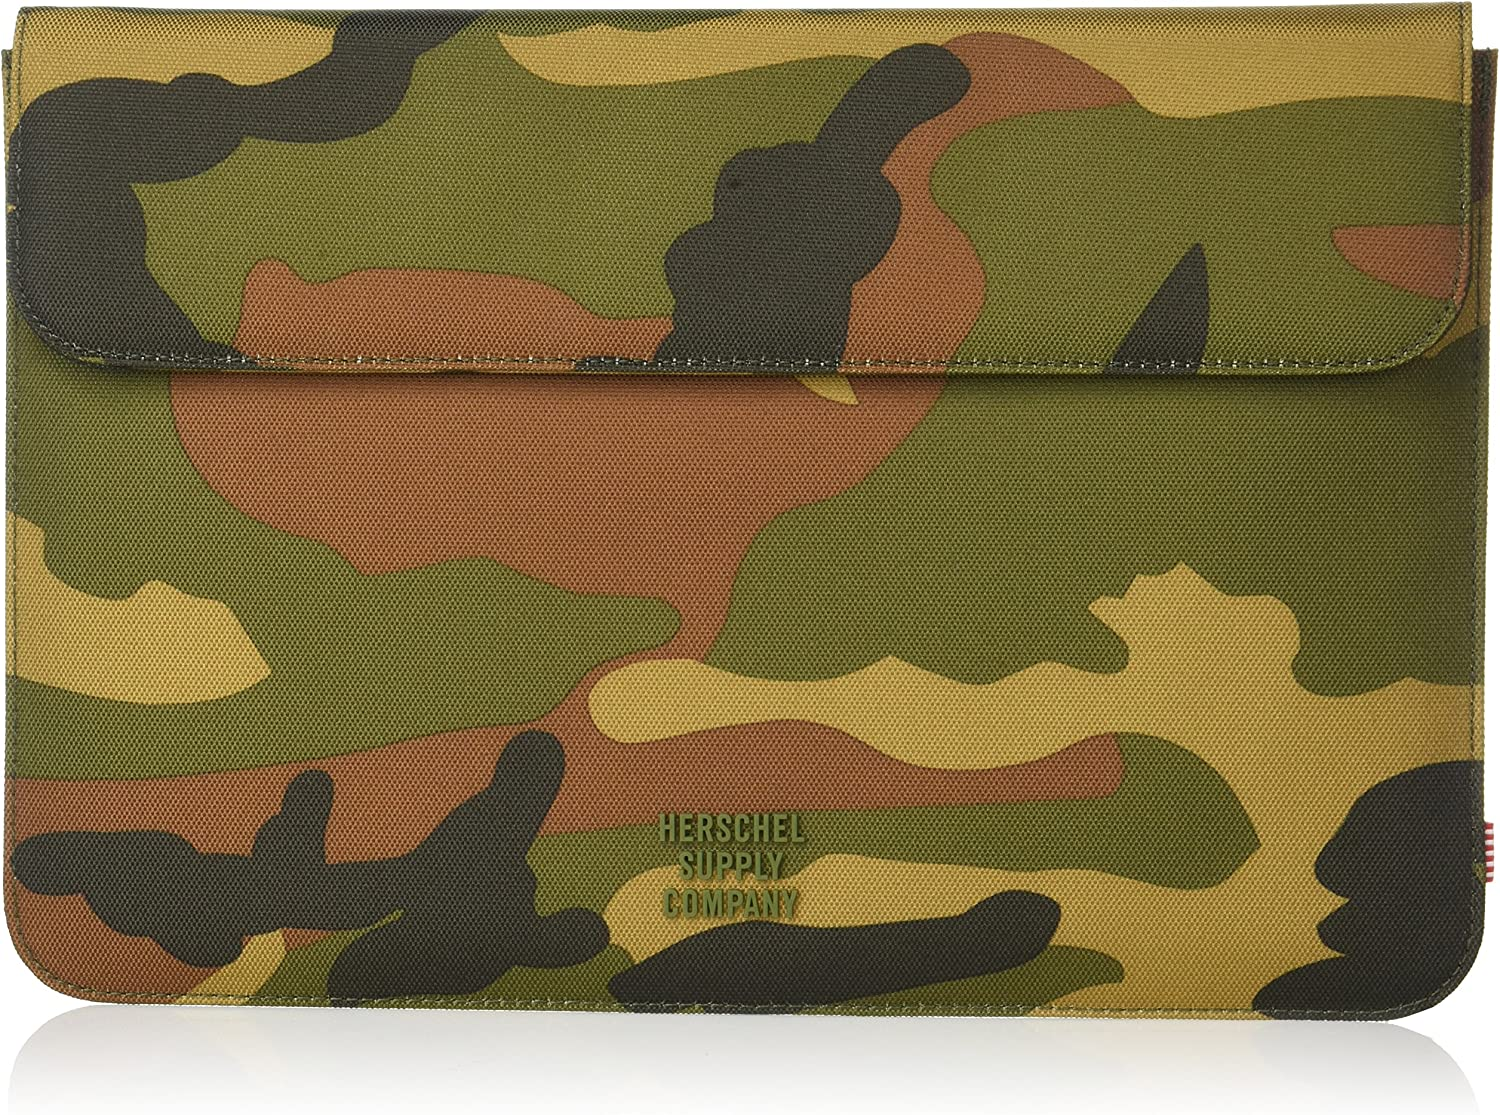 Herschel Spokane Sleeve for MacBook/iPad, W Camo, 12-Inch